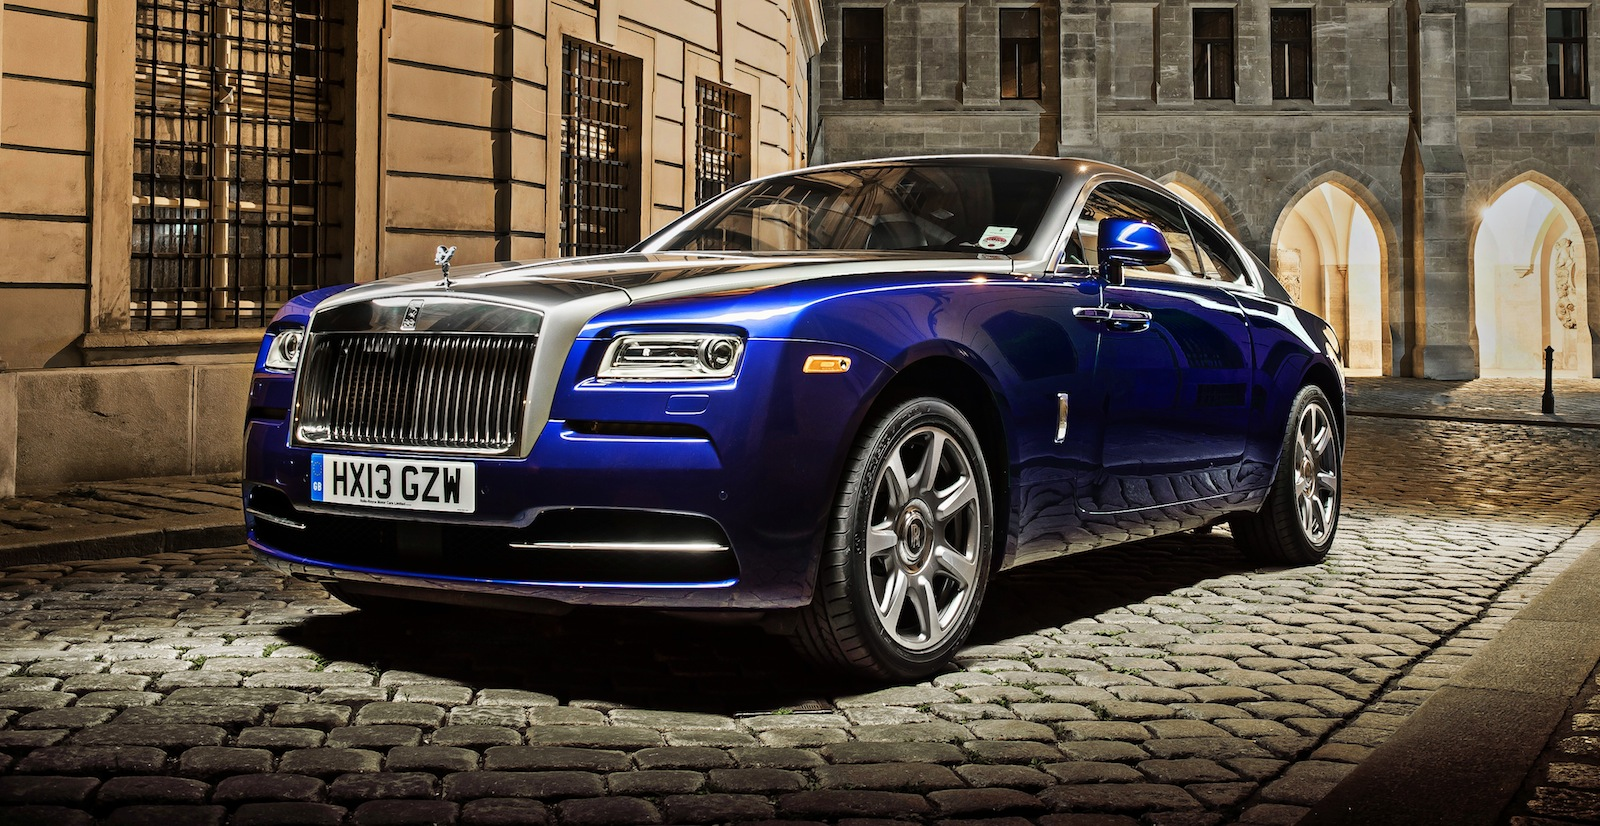 rolls royce wraith drophead coupe confirmed for 2015 photos caradvice. Black Bedroom Furniture Sets. Home Design Ideas